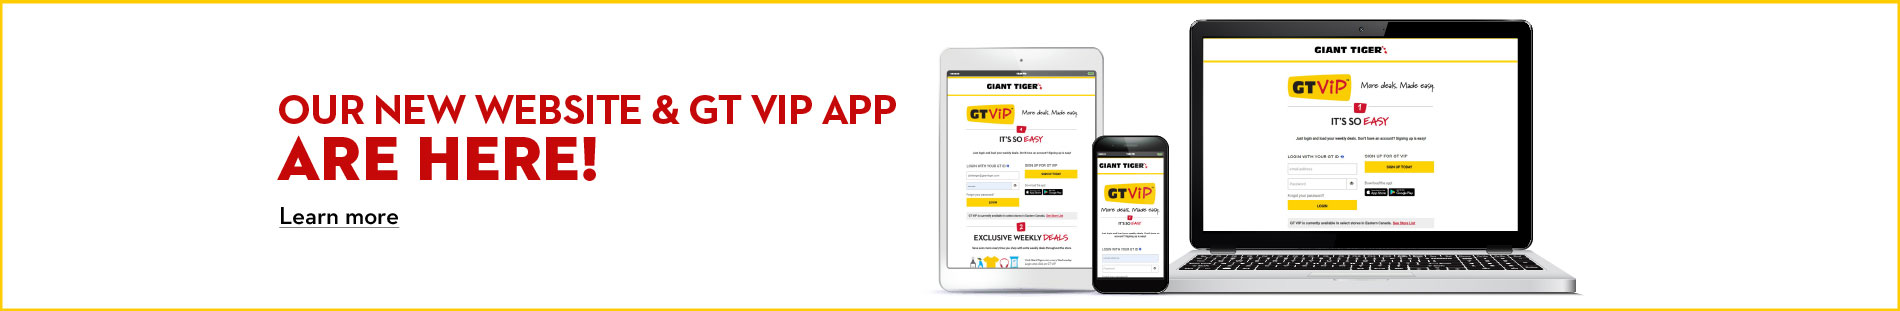 Our new website and GT VIP app are here!